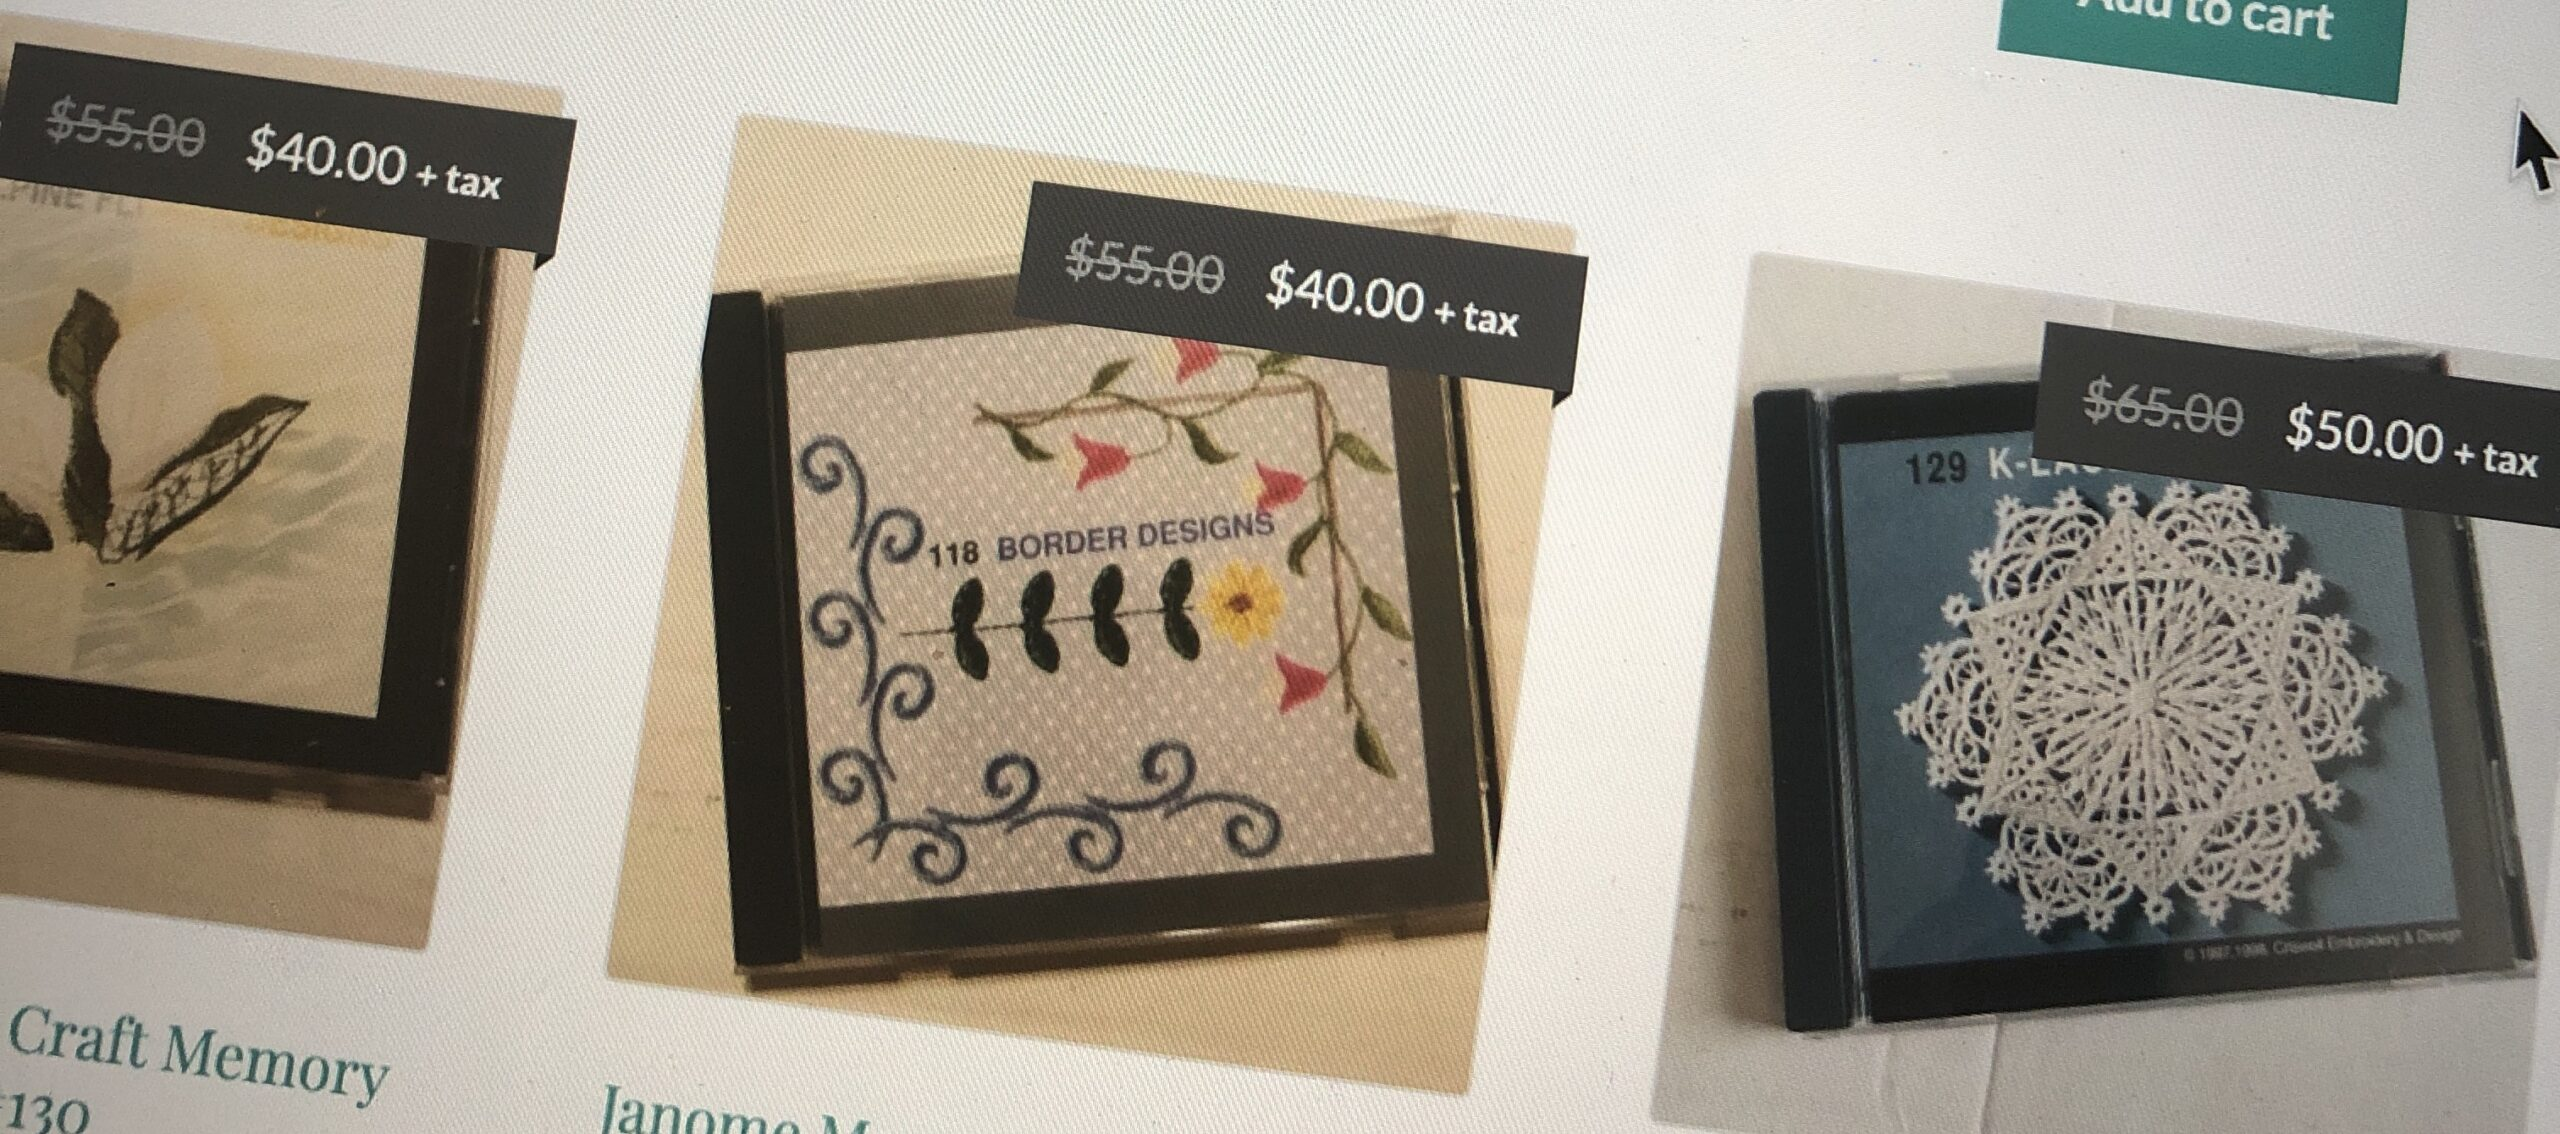 New Garage Sale Items in the SHOP   Stacey Sansom Designs